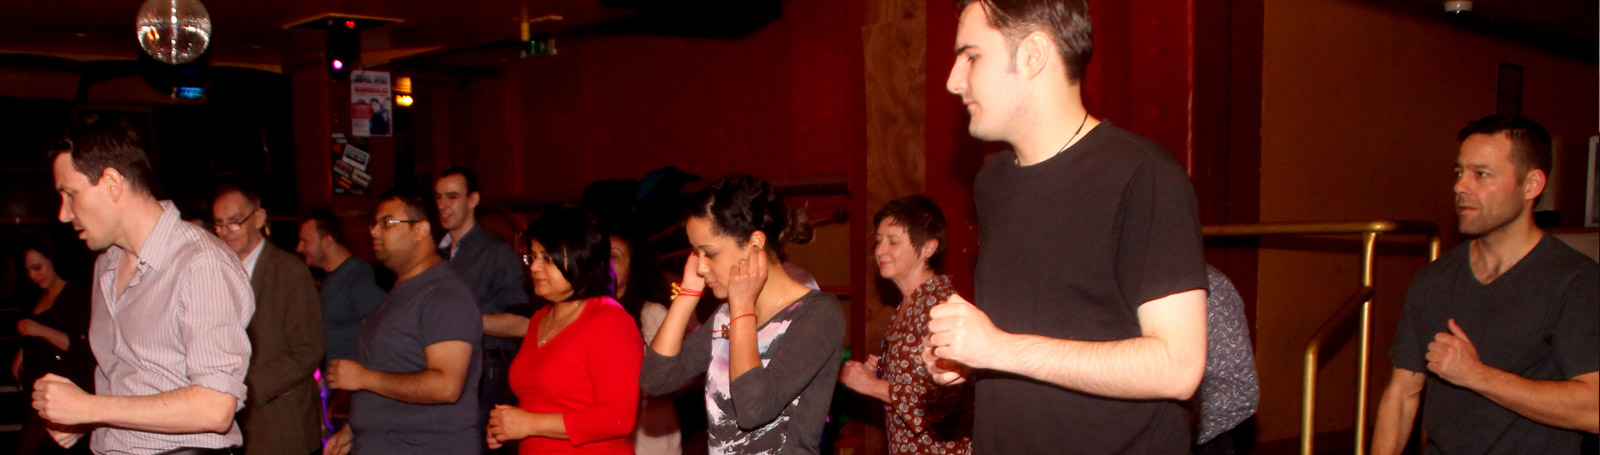 Salsa, merengue and bachata lessons in Liverpool, UK